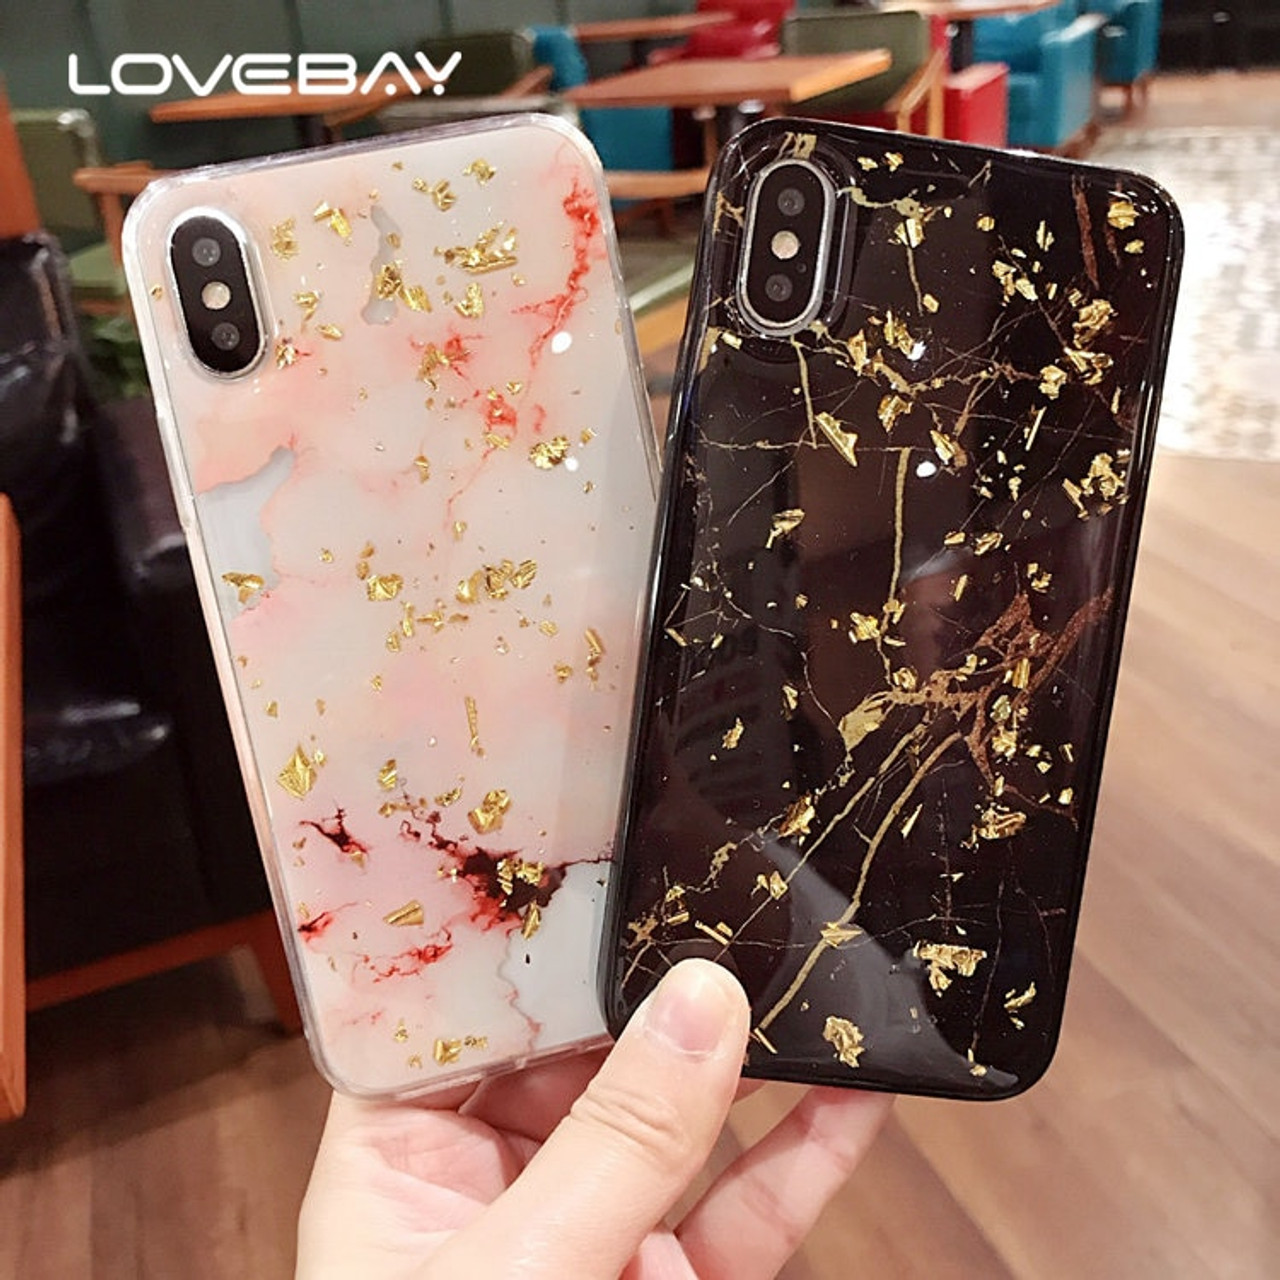 Lovebay Luxury Gold Foil Glitter Marble Stone Phone Cases For iPhone X 10 7  8 6 6S Plus Glossy Soft TPU Cover For iPhone 7 Case - OnshopDeals.Com 36fa0e94f37b